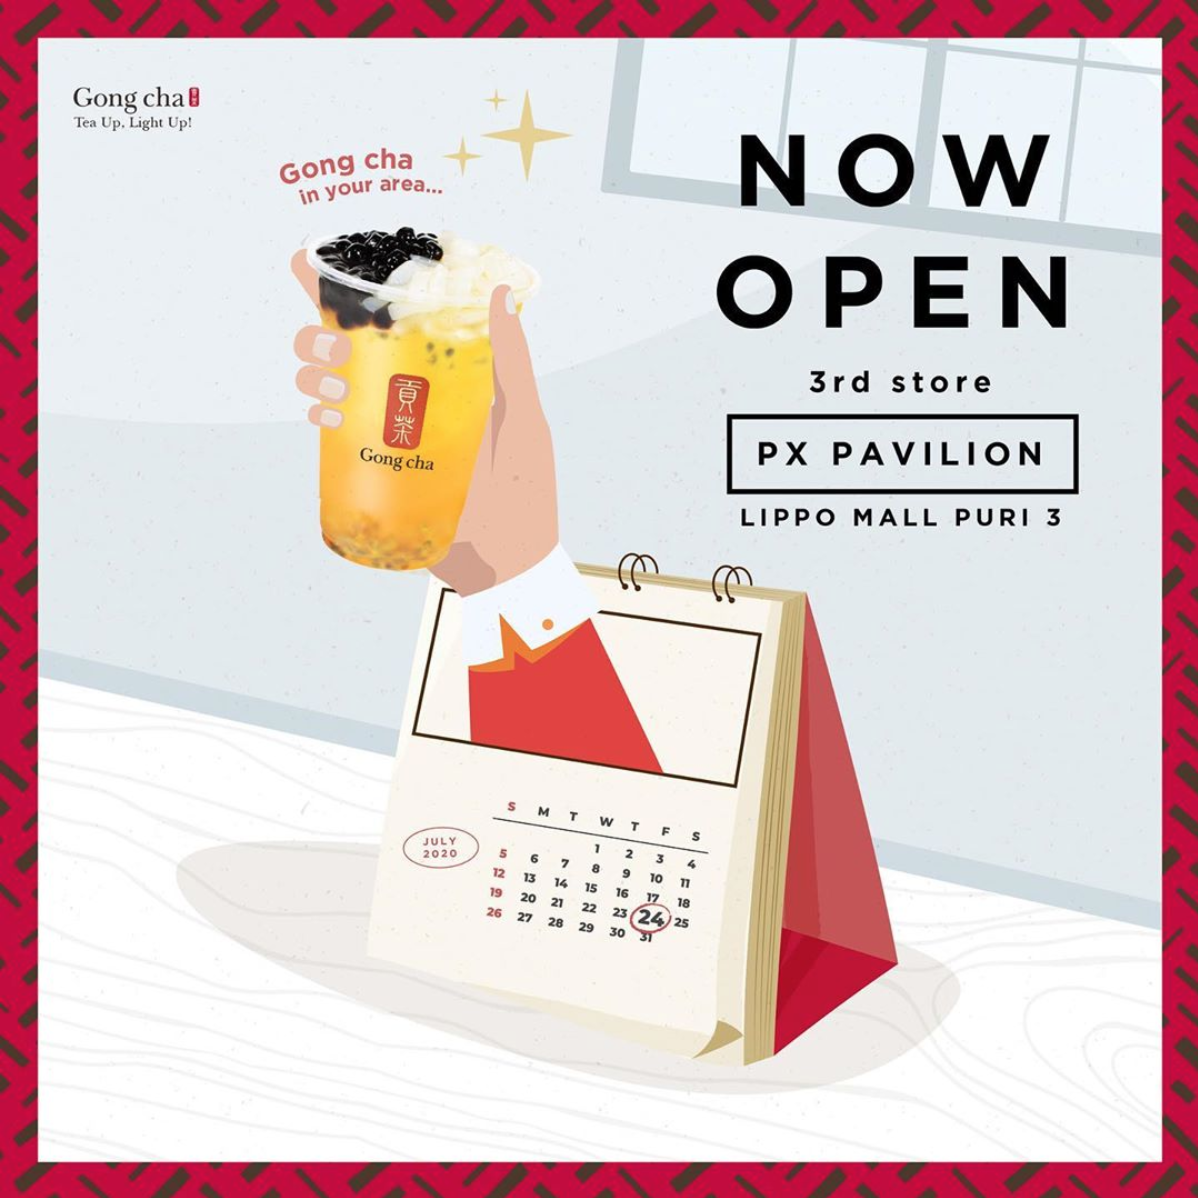 Gong Cha Now Open in lippo mall puri st. moritz